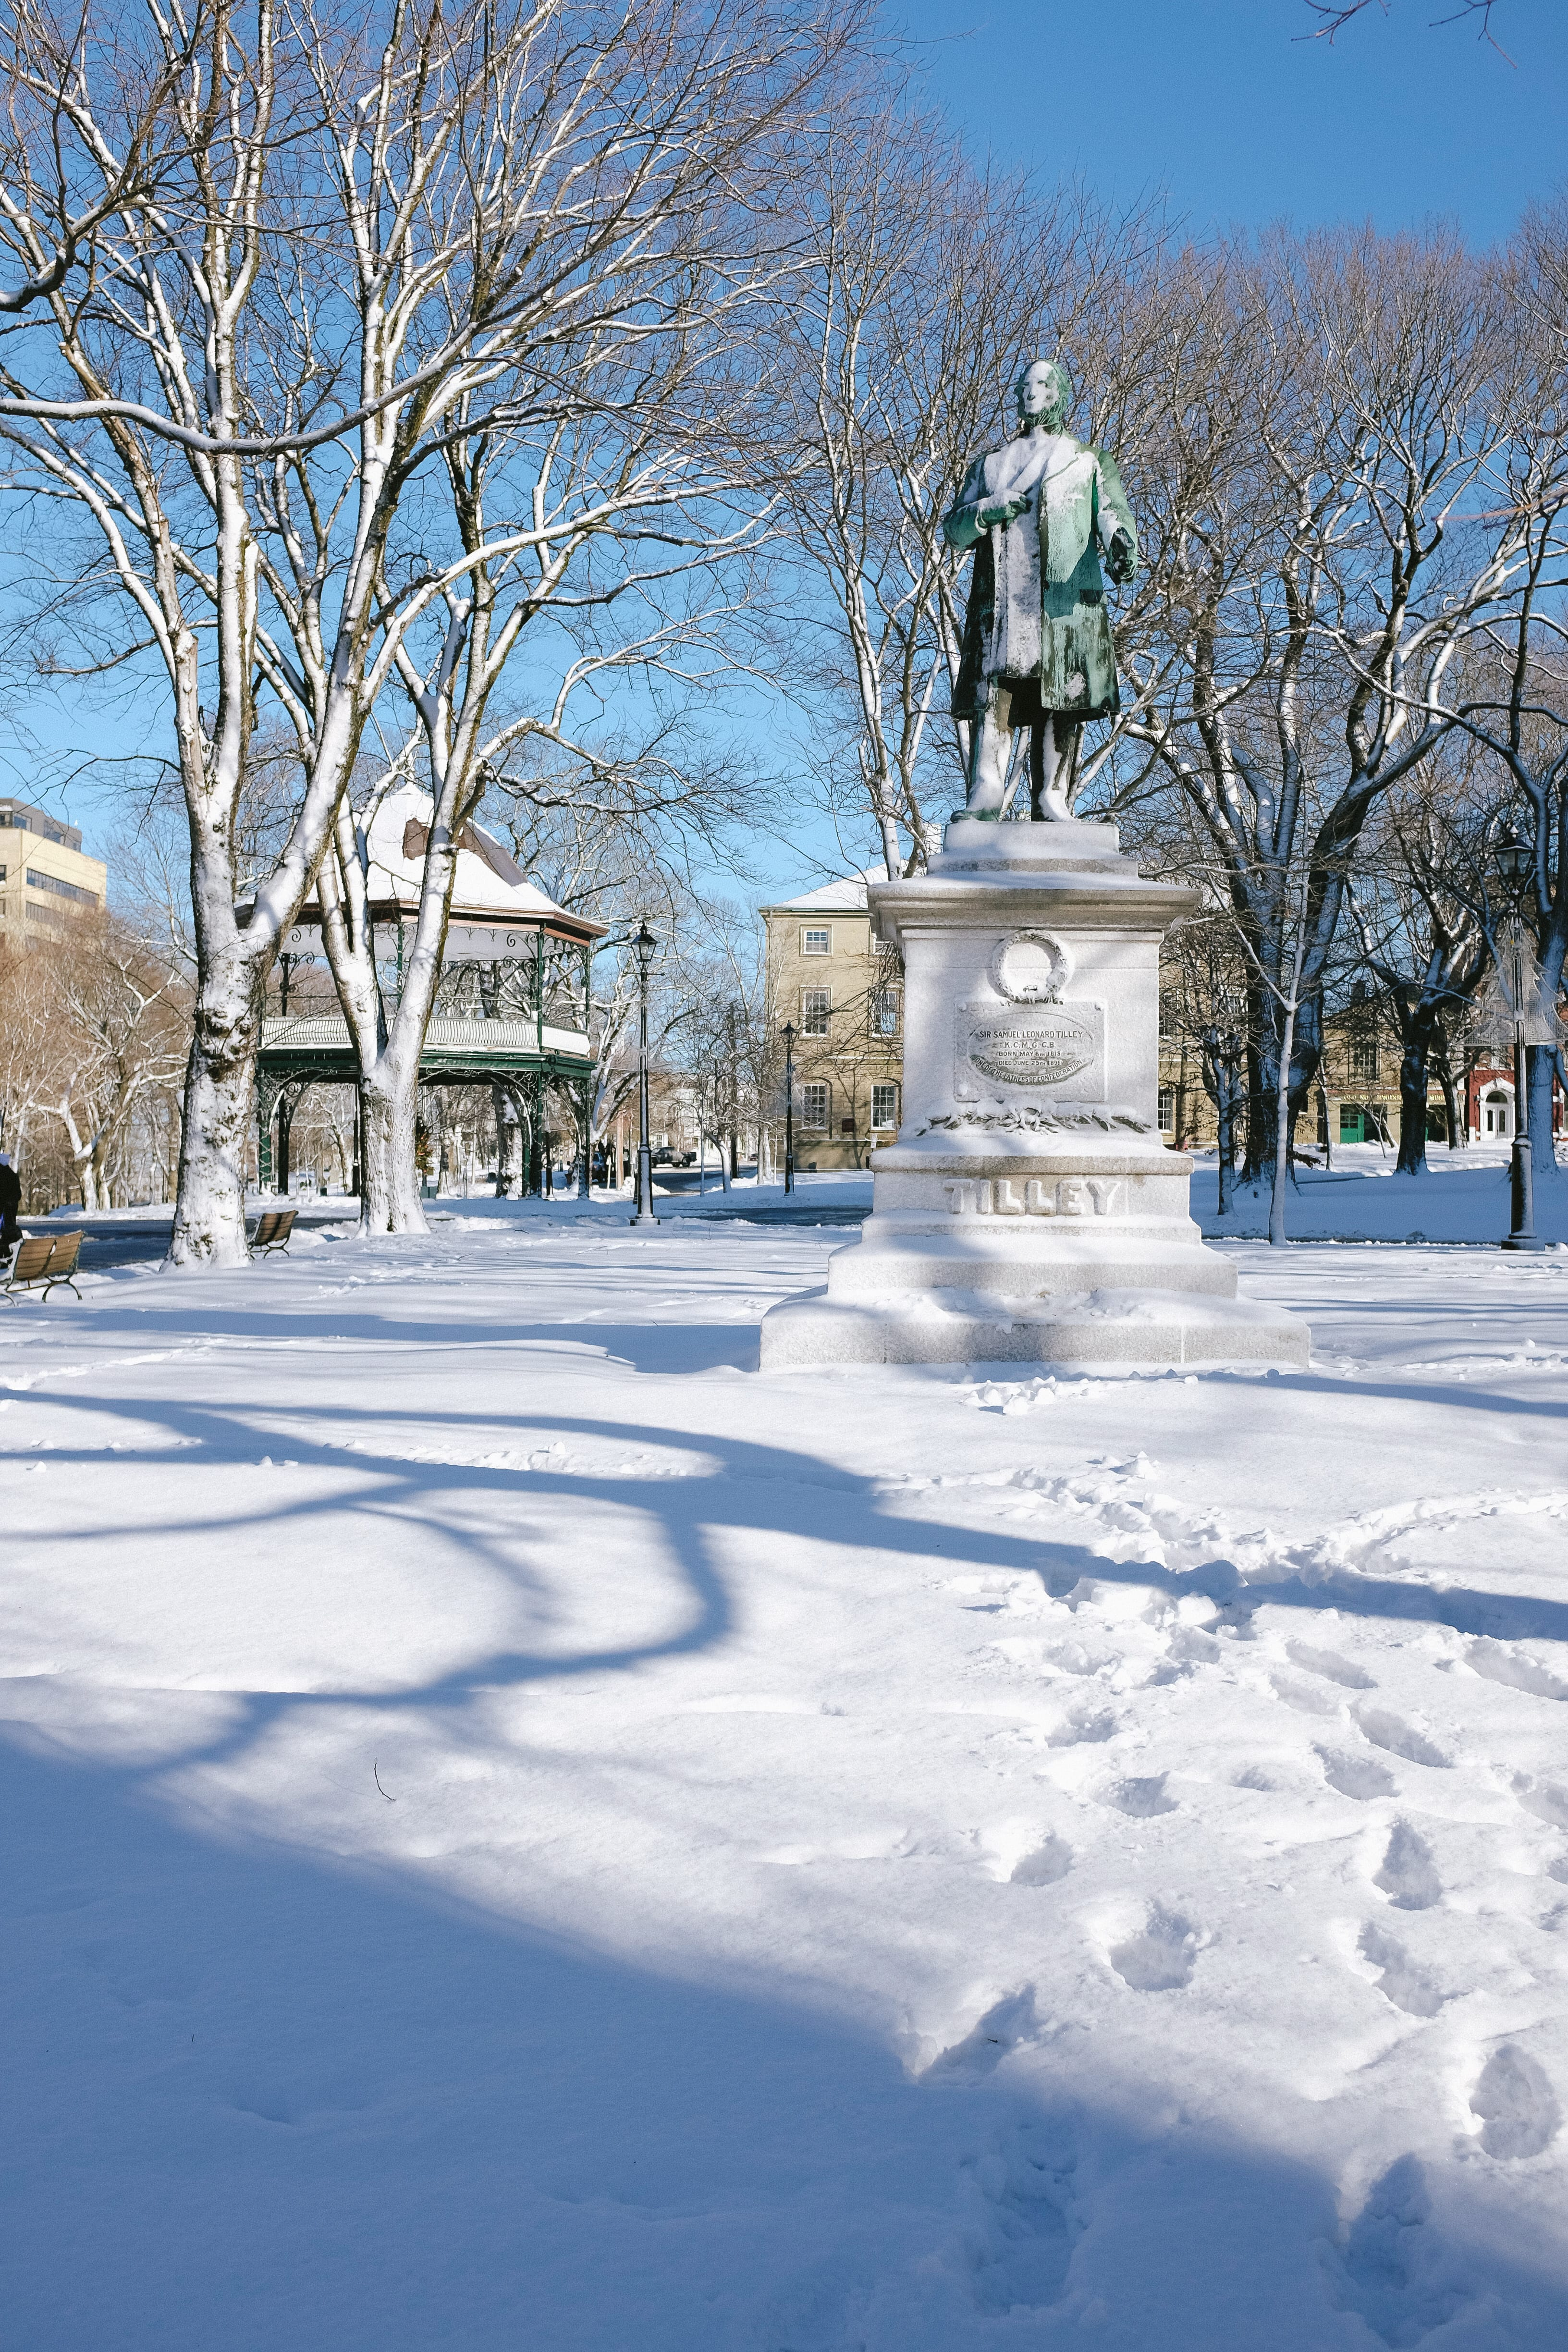 A photograph depicting Tilley Statue in Snow Kings Square